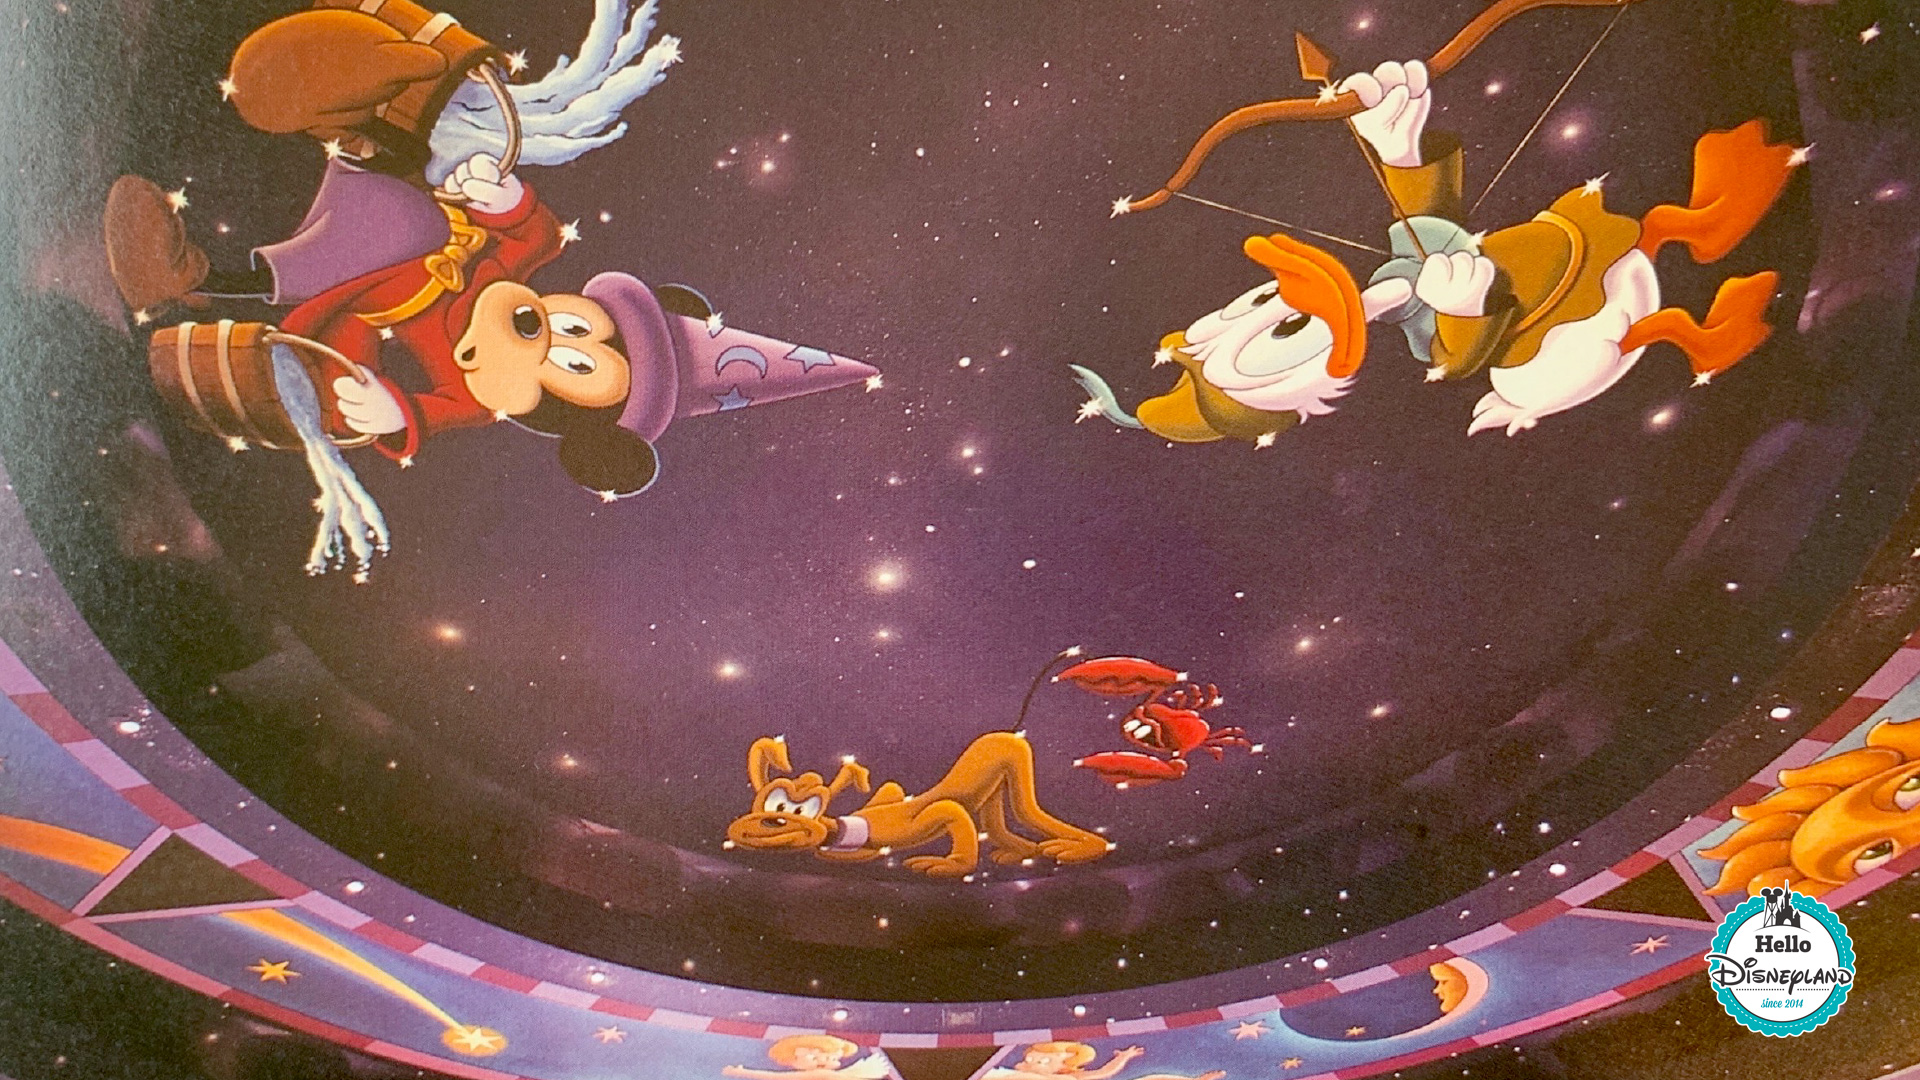 fresque-constellations-1992-disneyland-paris-eurodisney-hello-maureen